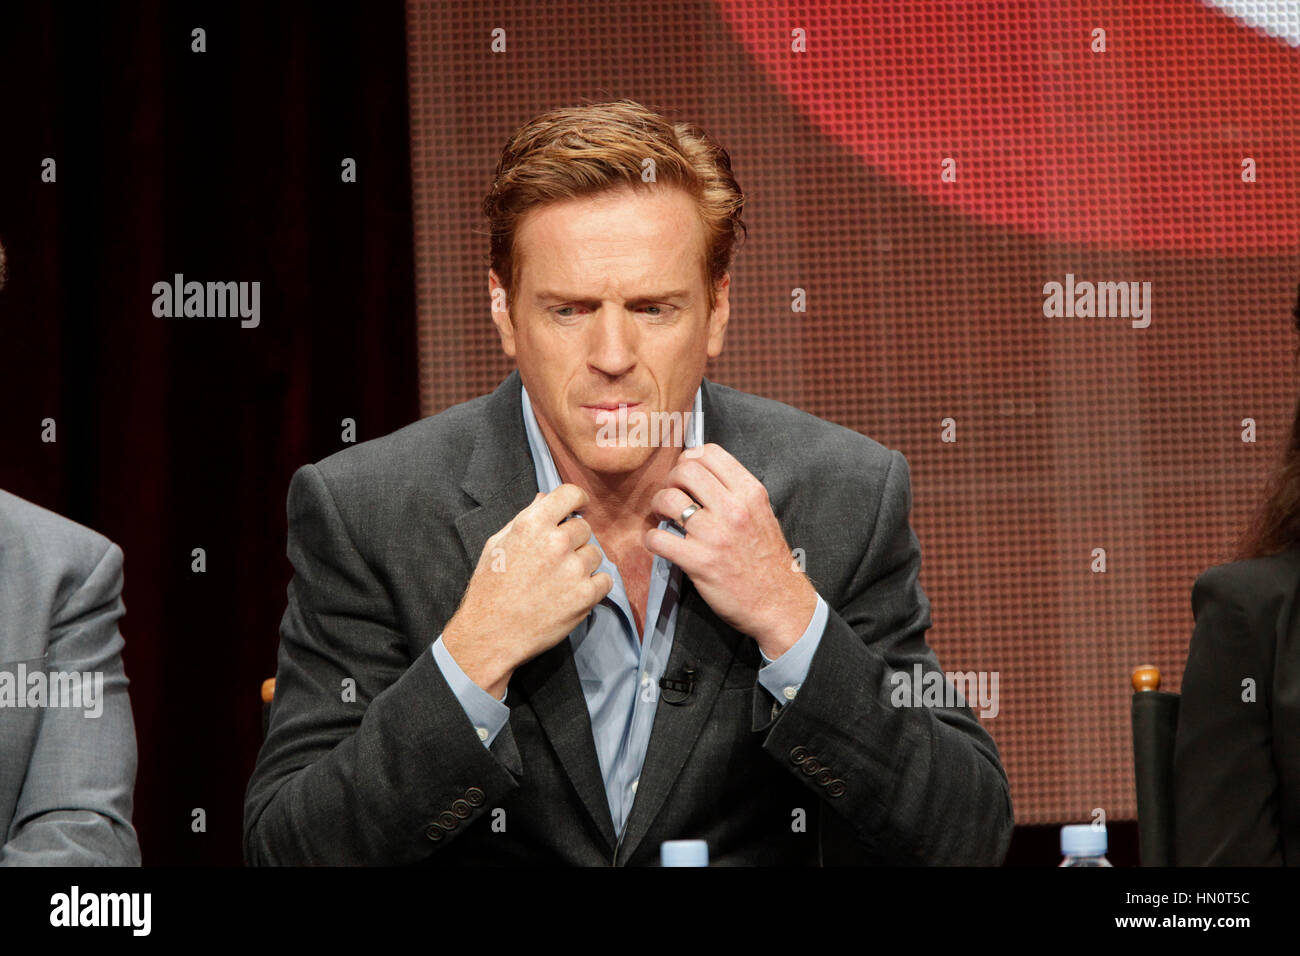 Damian Lewis at the panel for the Showtime TV show, 'Billions' at the 2015 TCAs  on August 11, 2015 in Beverly - Stock Image